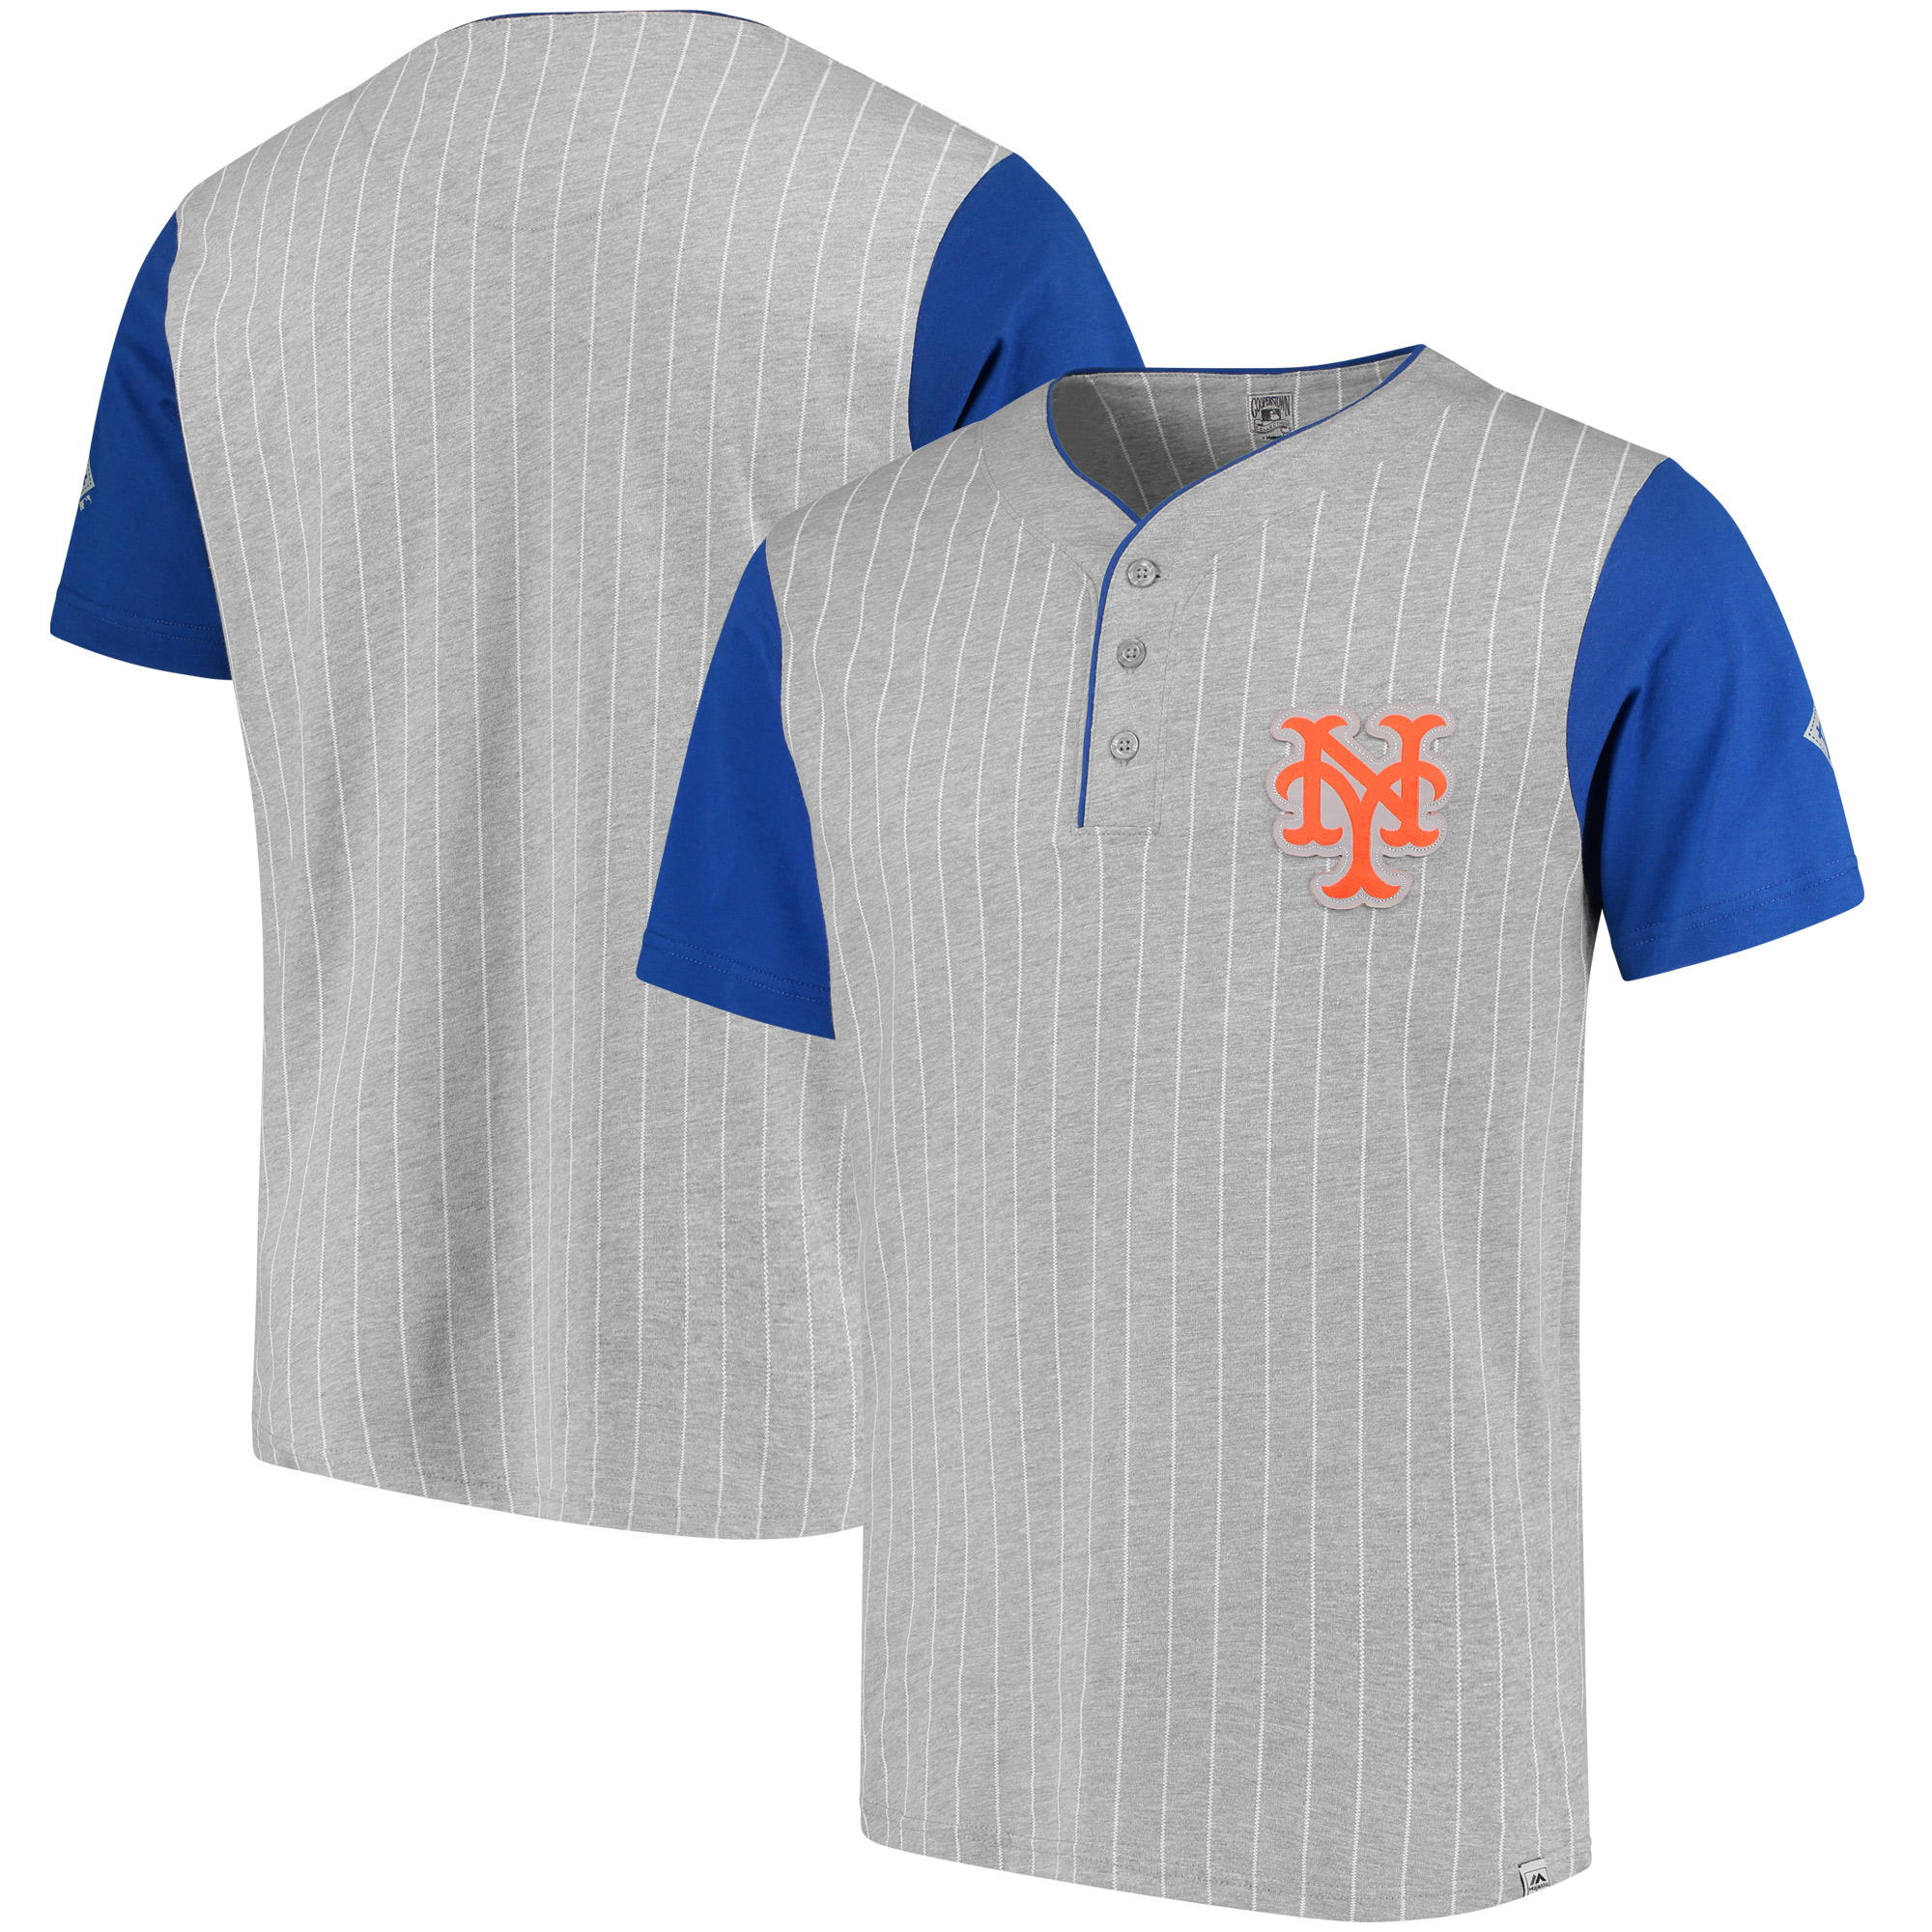 New York Mets Majestic Cooperstown Collection Pinstripe Henley T-Shirt - Gray/Royal